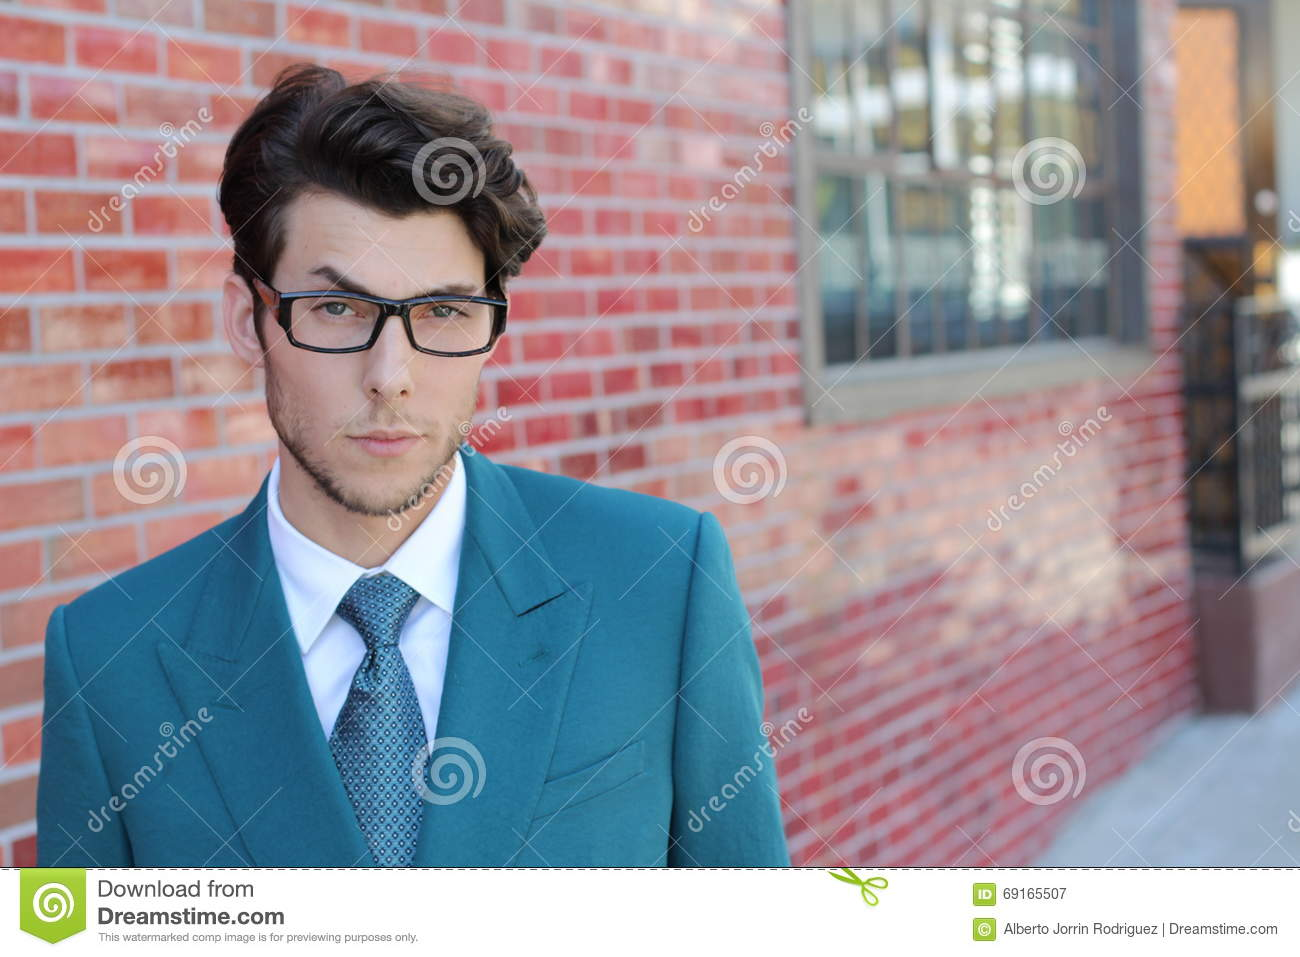 Distraught young businessman with raised eyebrow on the street